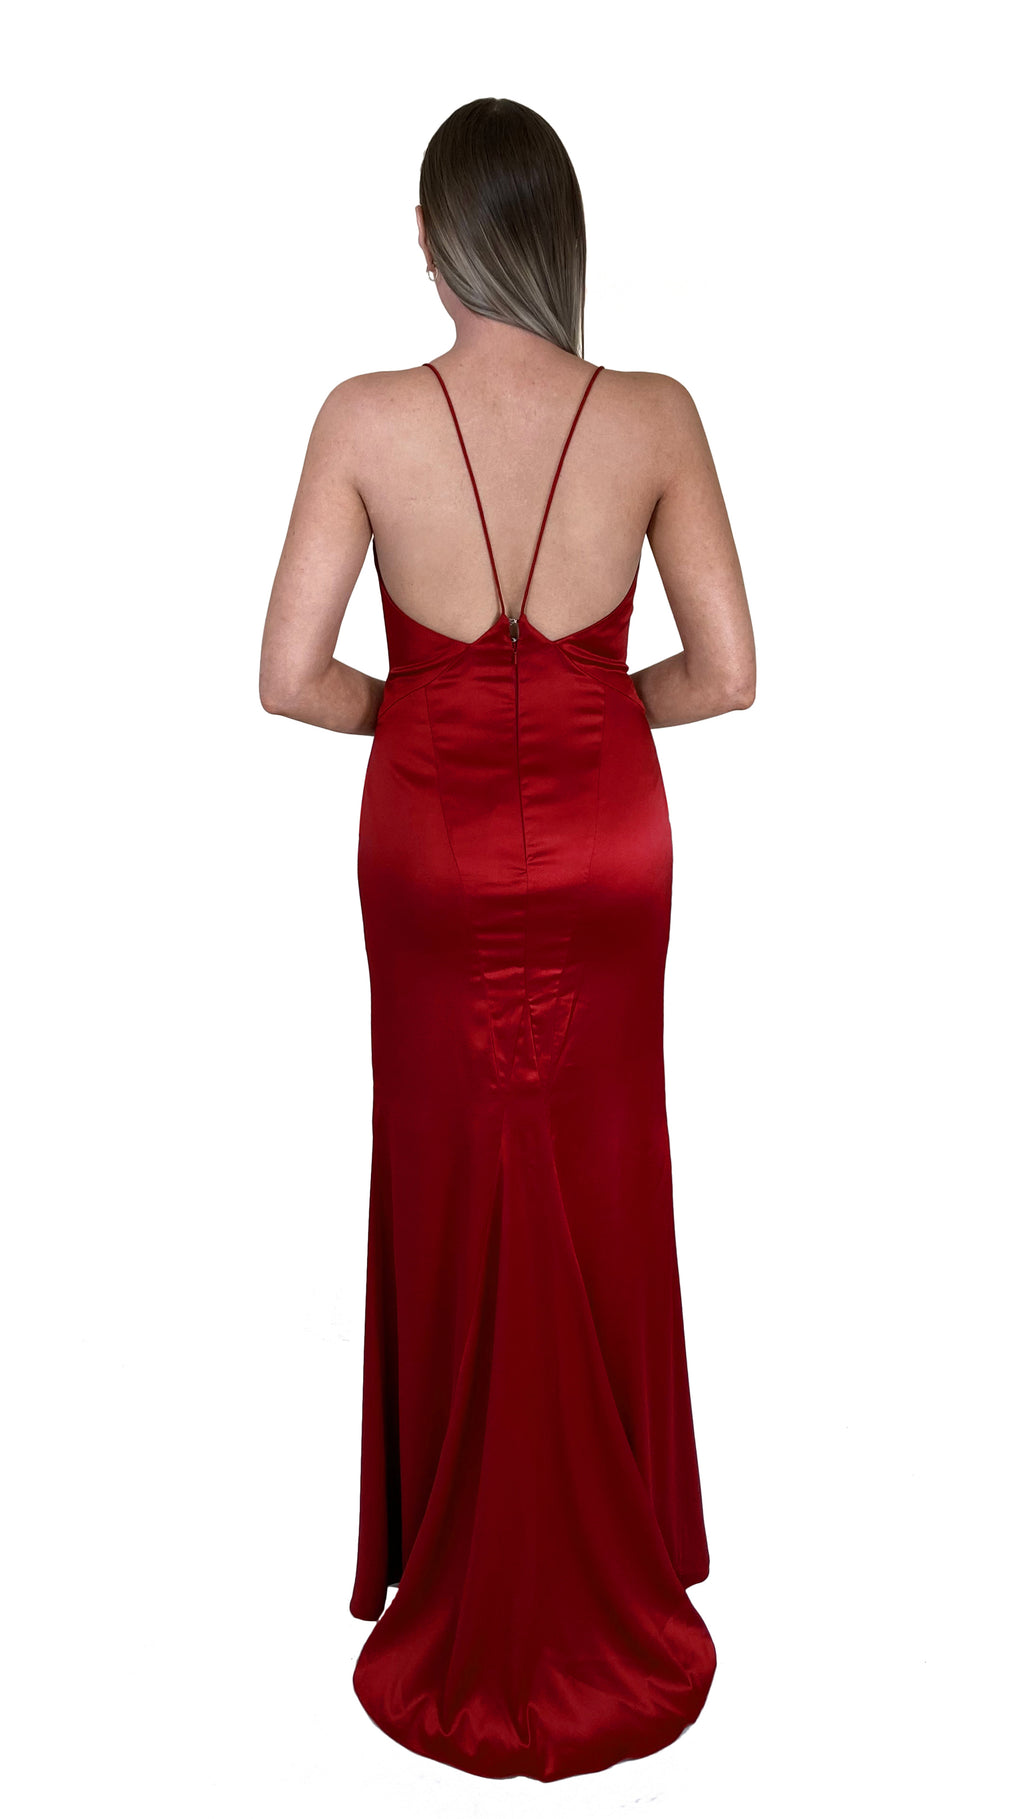 Bariano Nora V Neck Red Satin Gown back